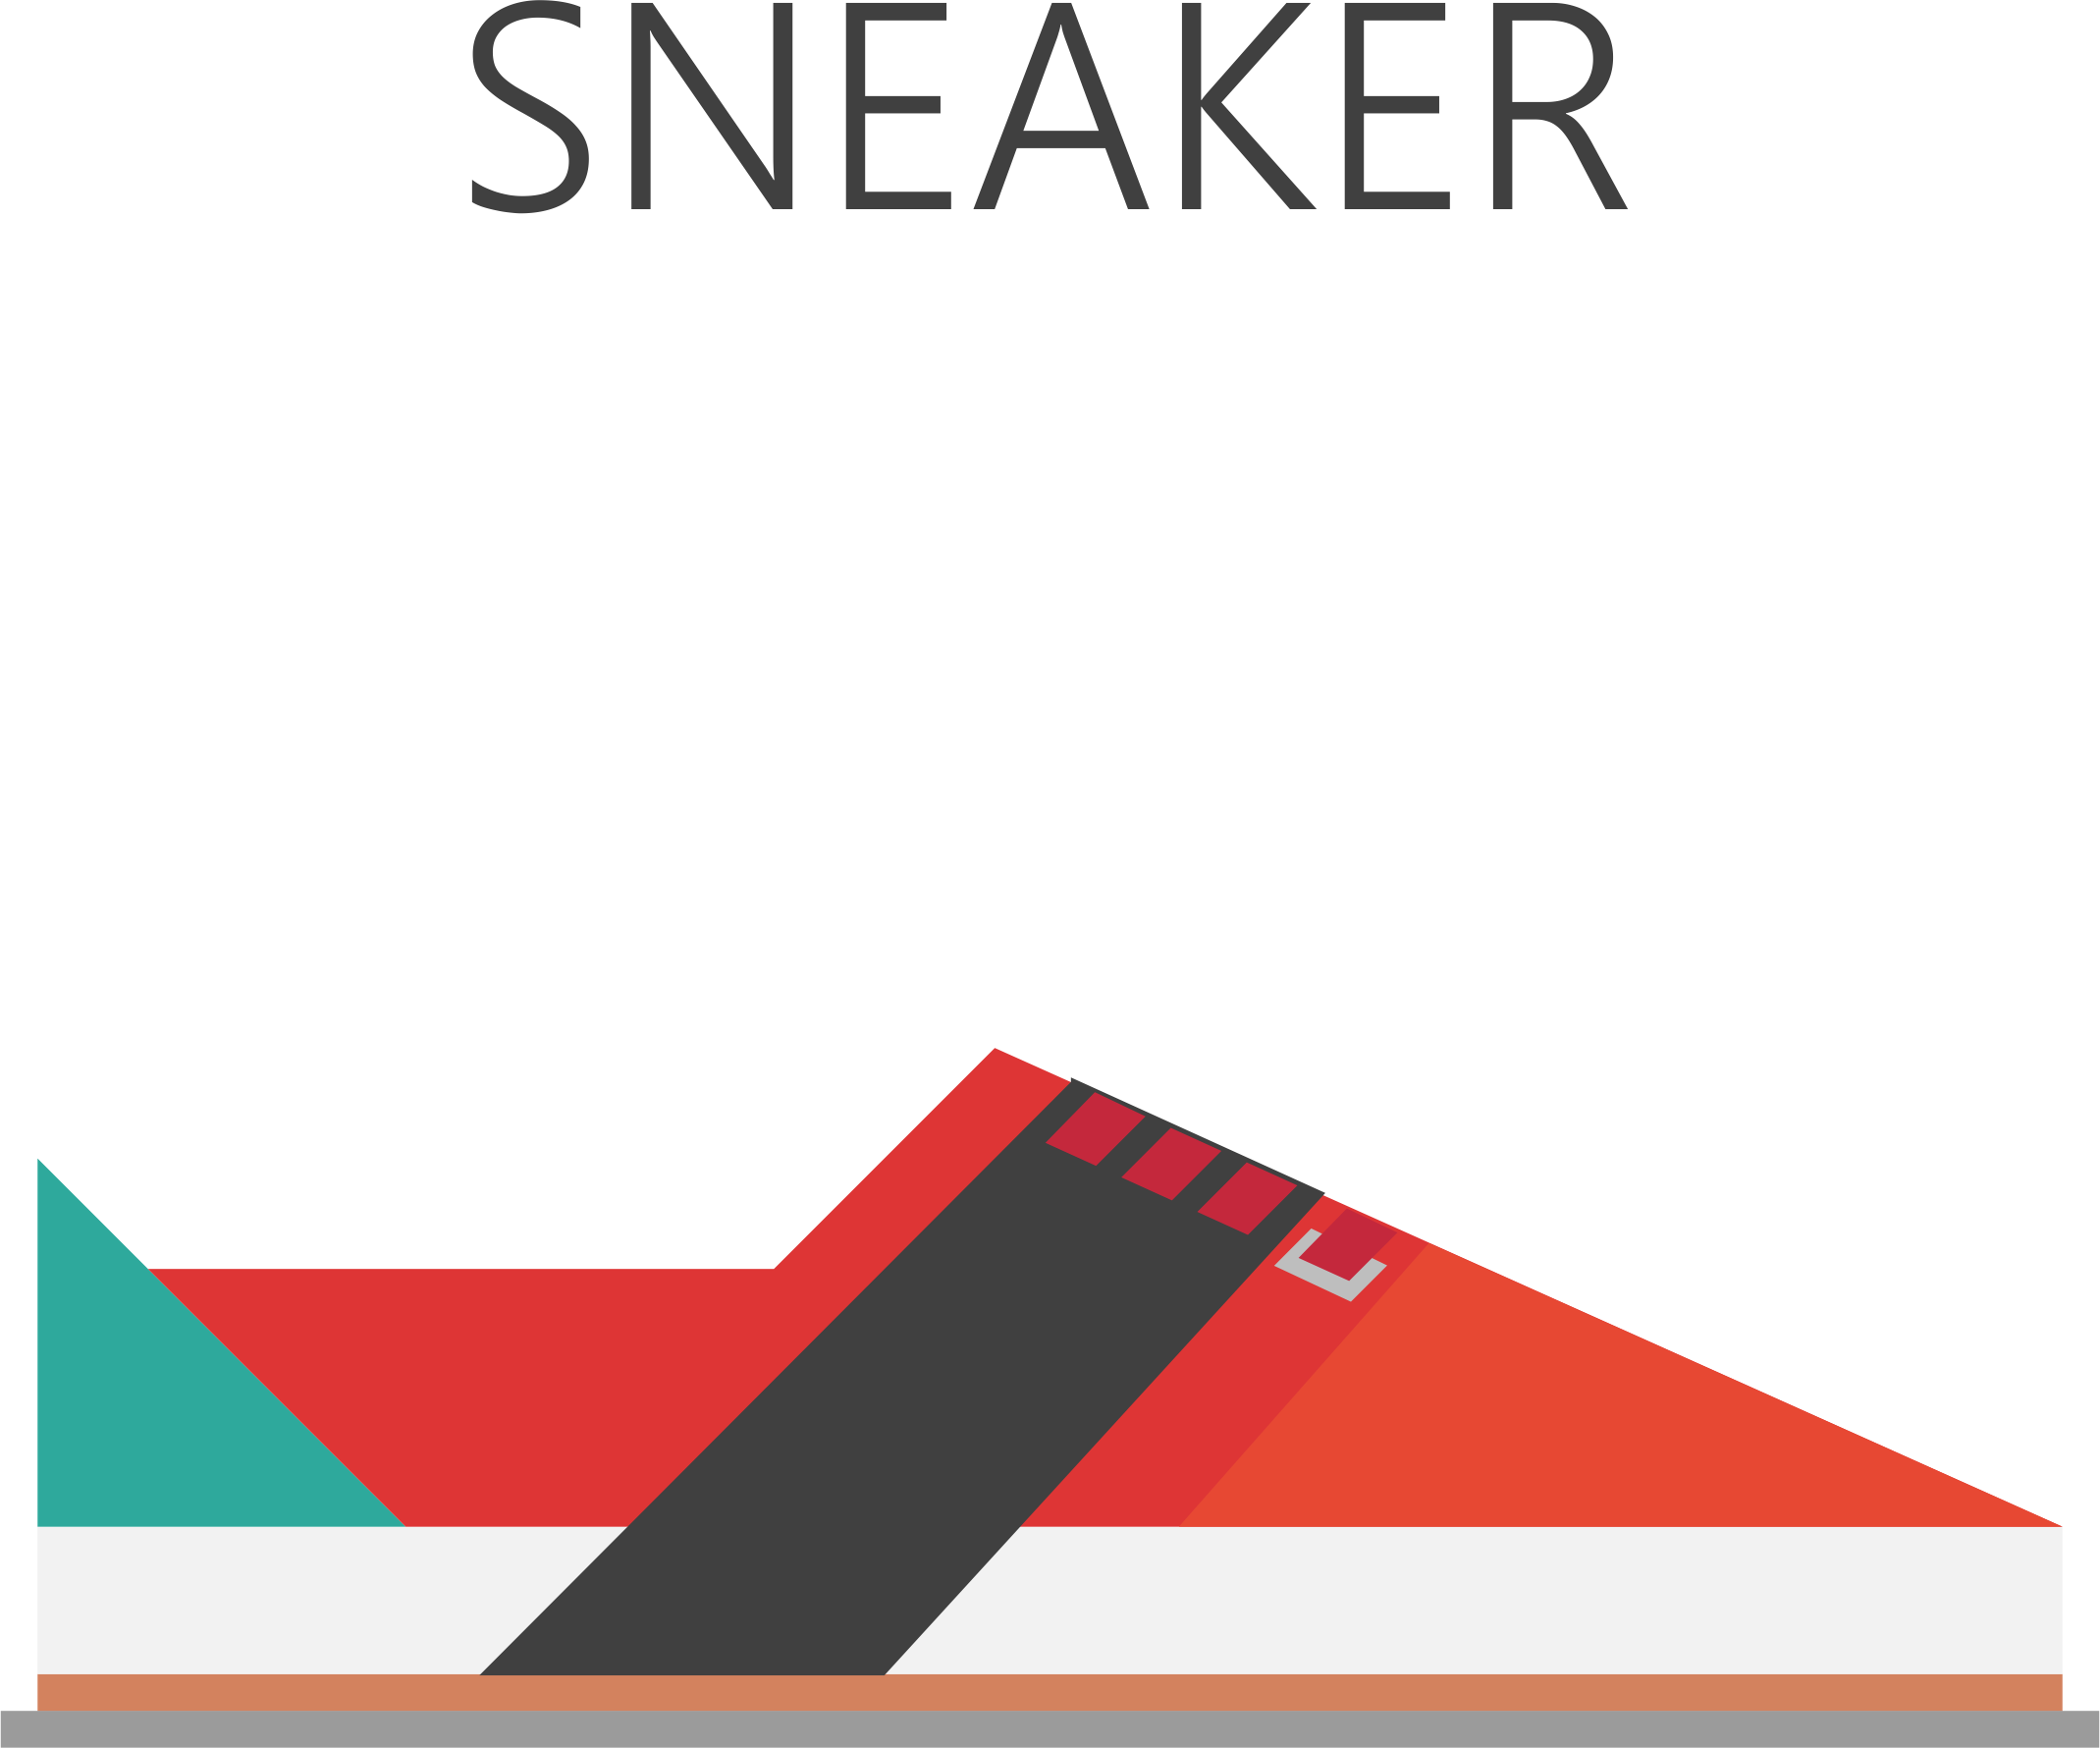 sneakers by crisg